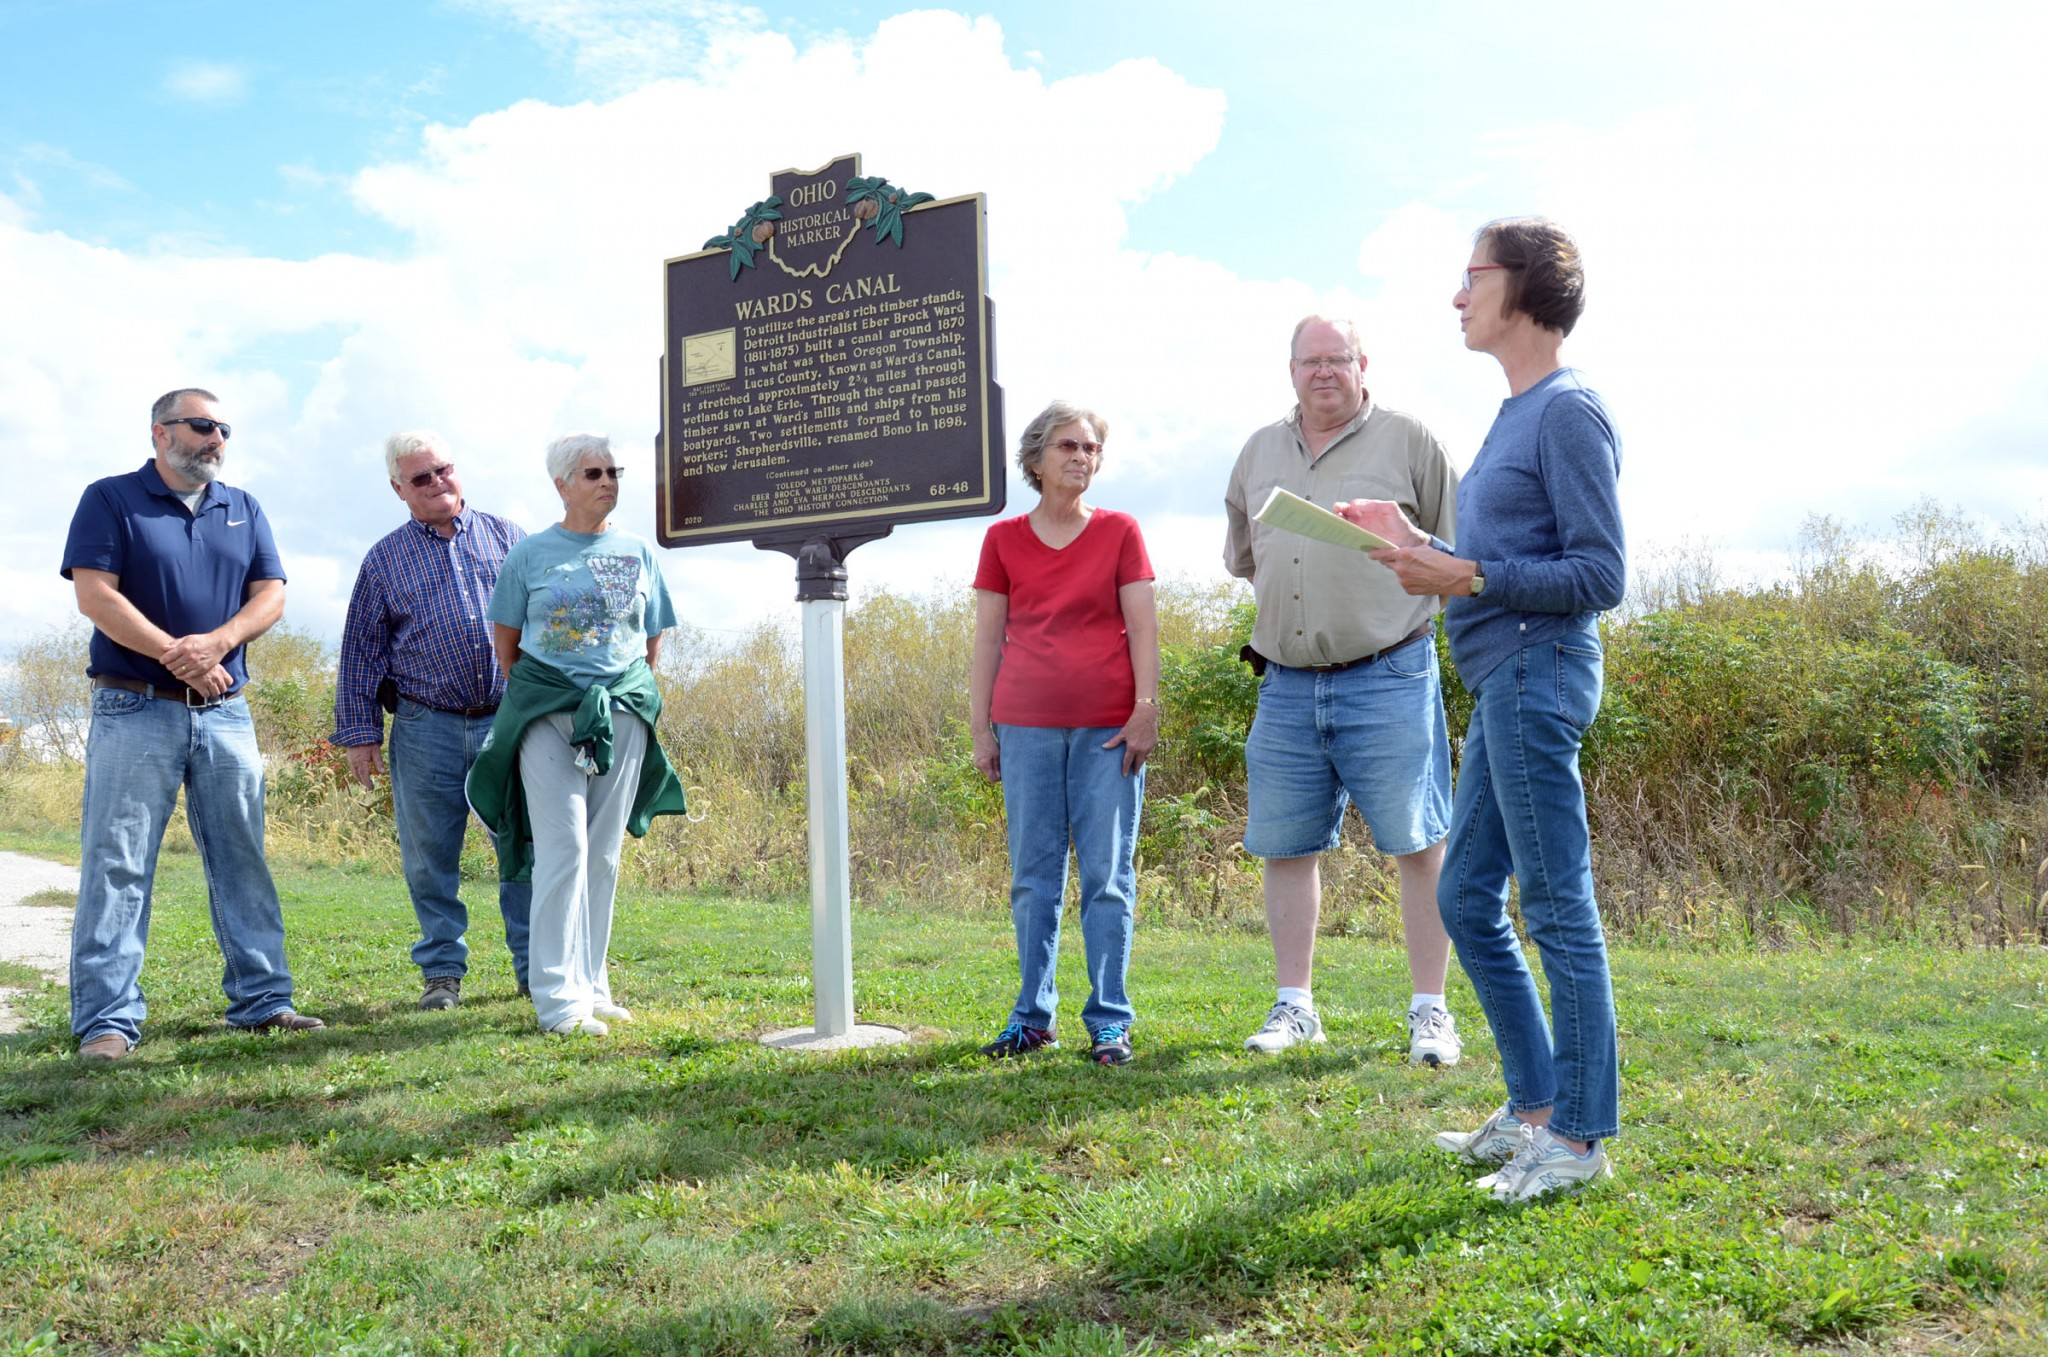 Pictured, left to right: Beau Miller, Dave Bench, Jerusalem Township Trustees; Deanna Restemyer, Rosemary Brim and Bill Miller listen as Debbie Miller dedicates the Ohio Historical Marker for Ward's Canal at Howard Marsh Metropark. Restemyer and Brim are sisters, and Bill Miller is husband to Debbie Miller. (Press photo by Ken Grosjean)